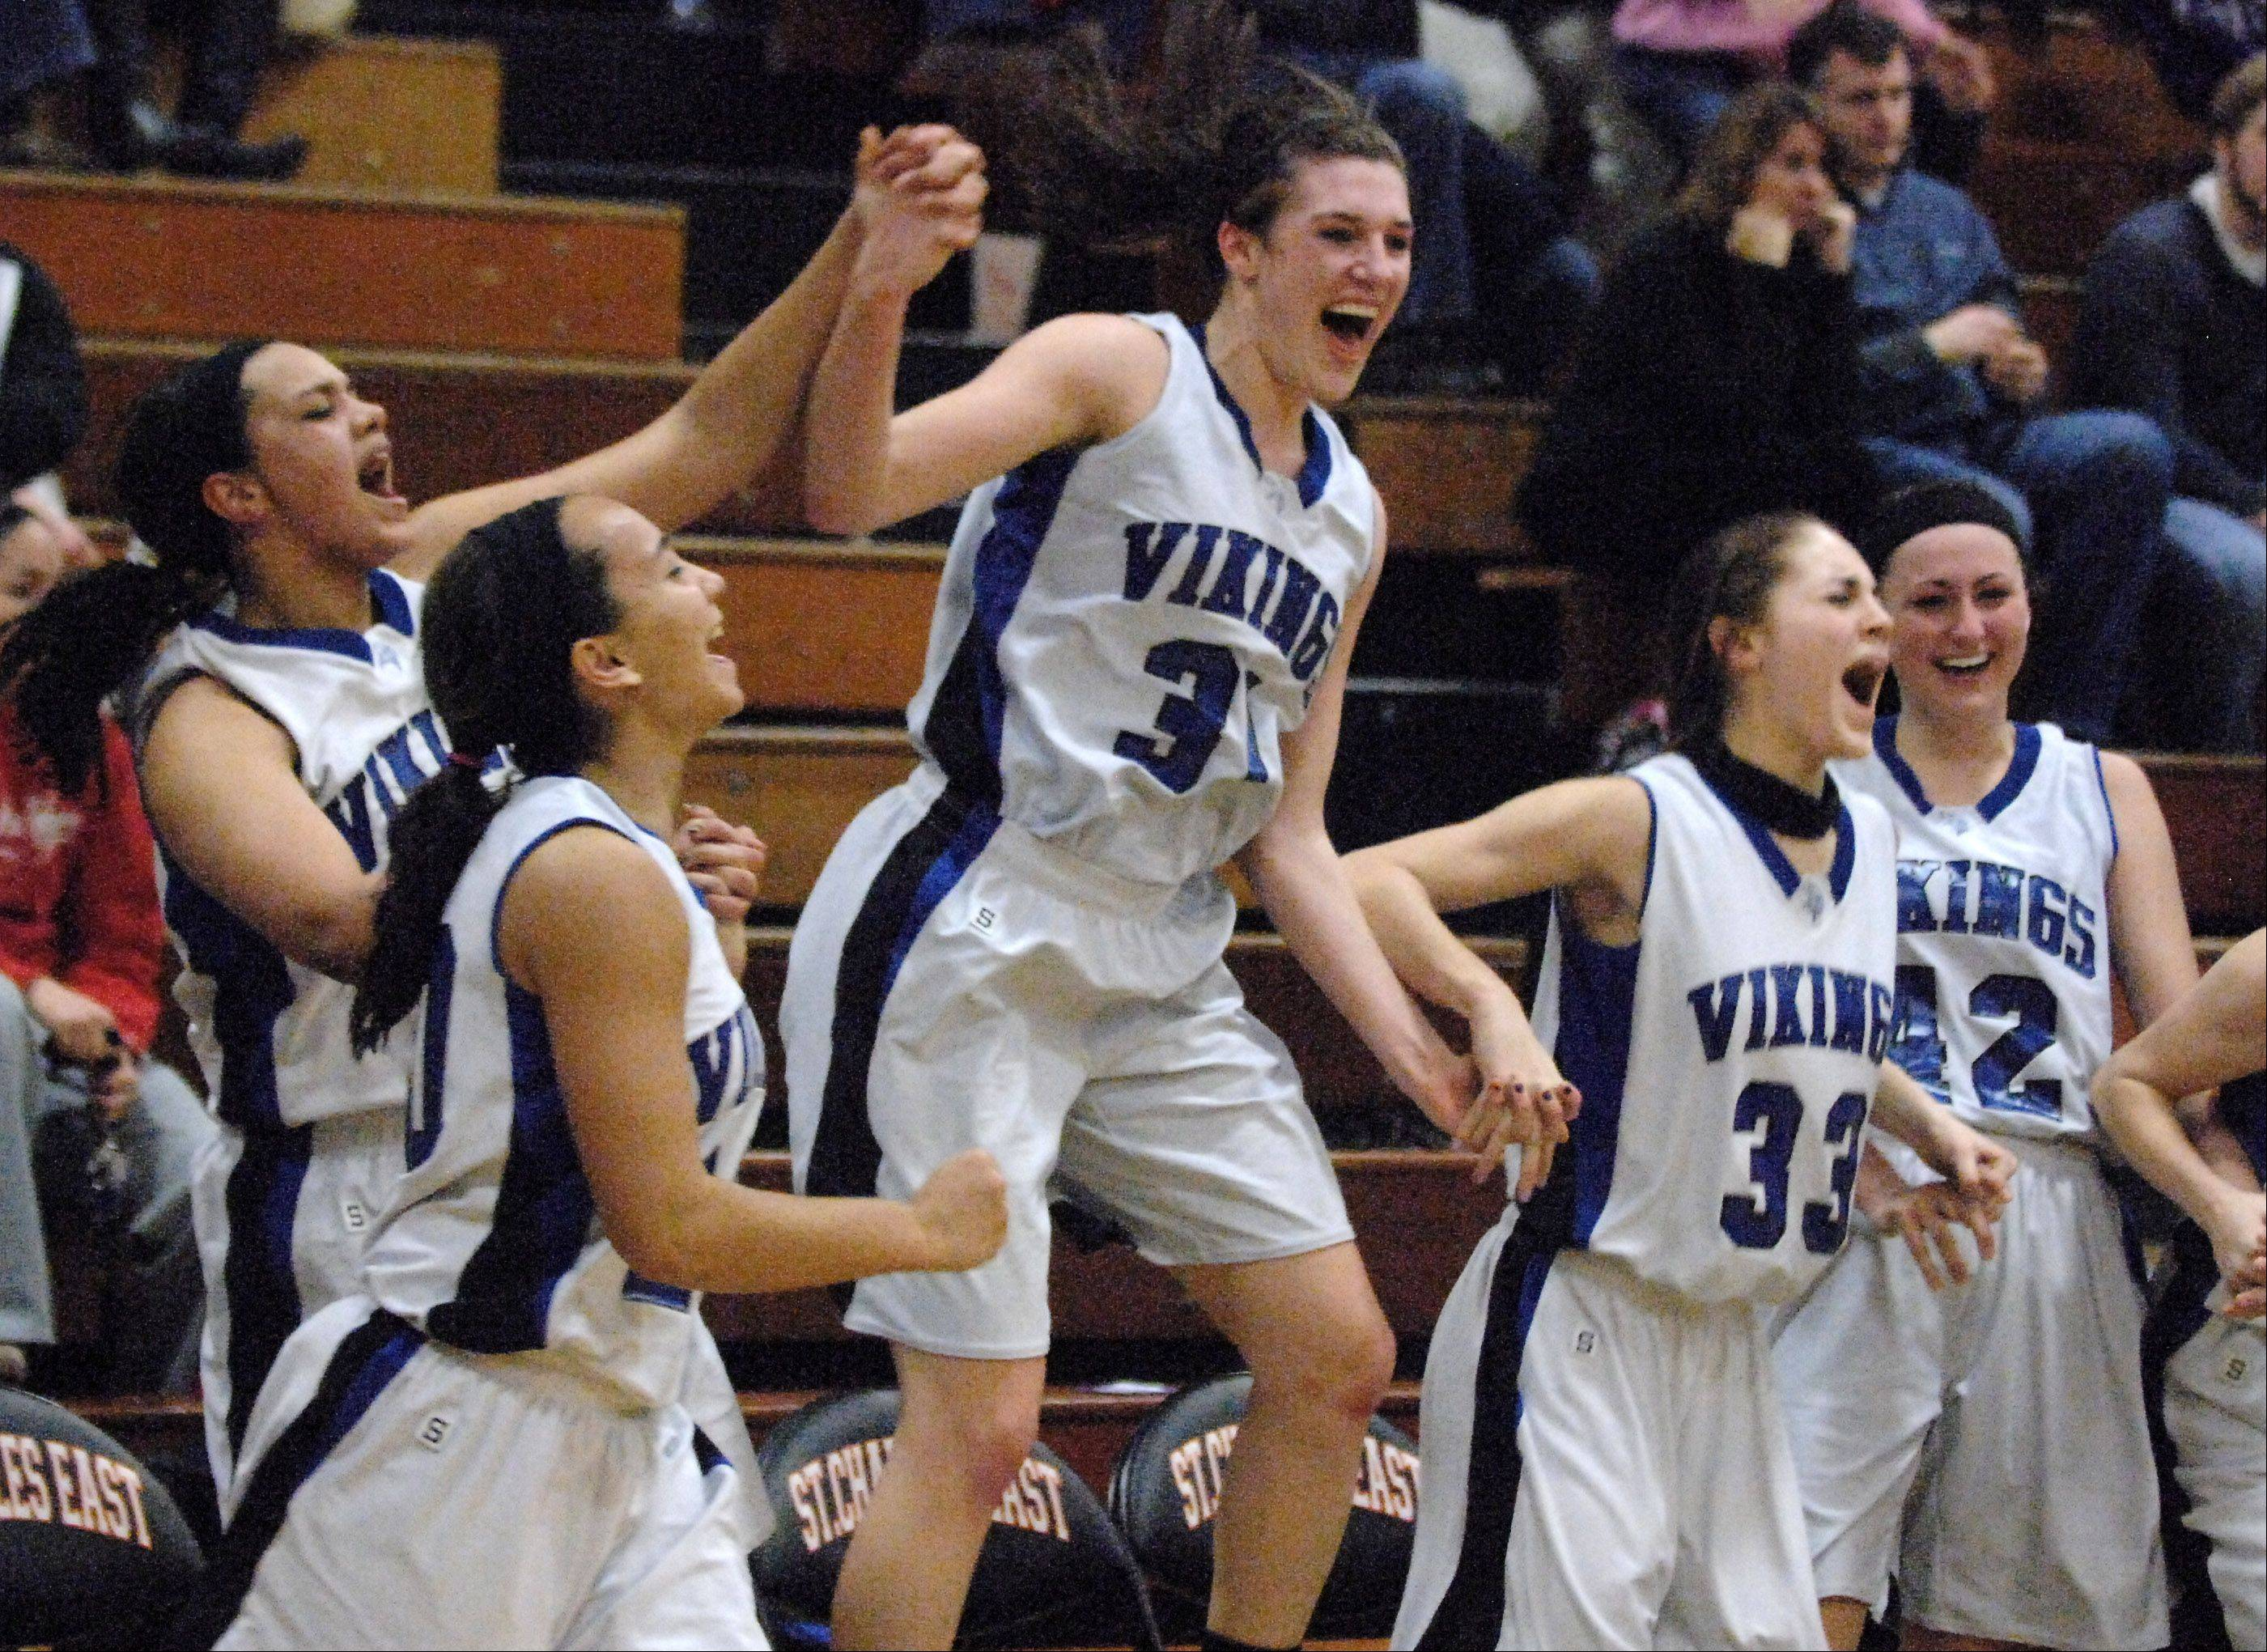 Geneva's Sami Pawlak, 31, and her teammates celebrate in the final seconds of their win over St. Charles East during Thursday's regional final game in St. Charles.